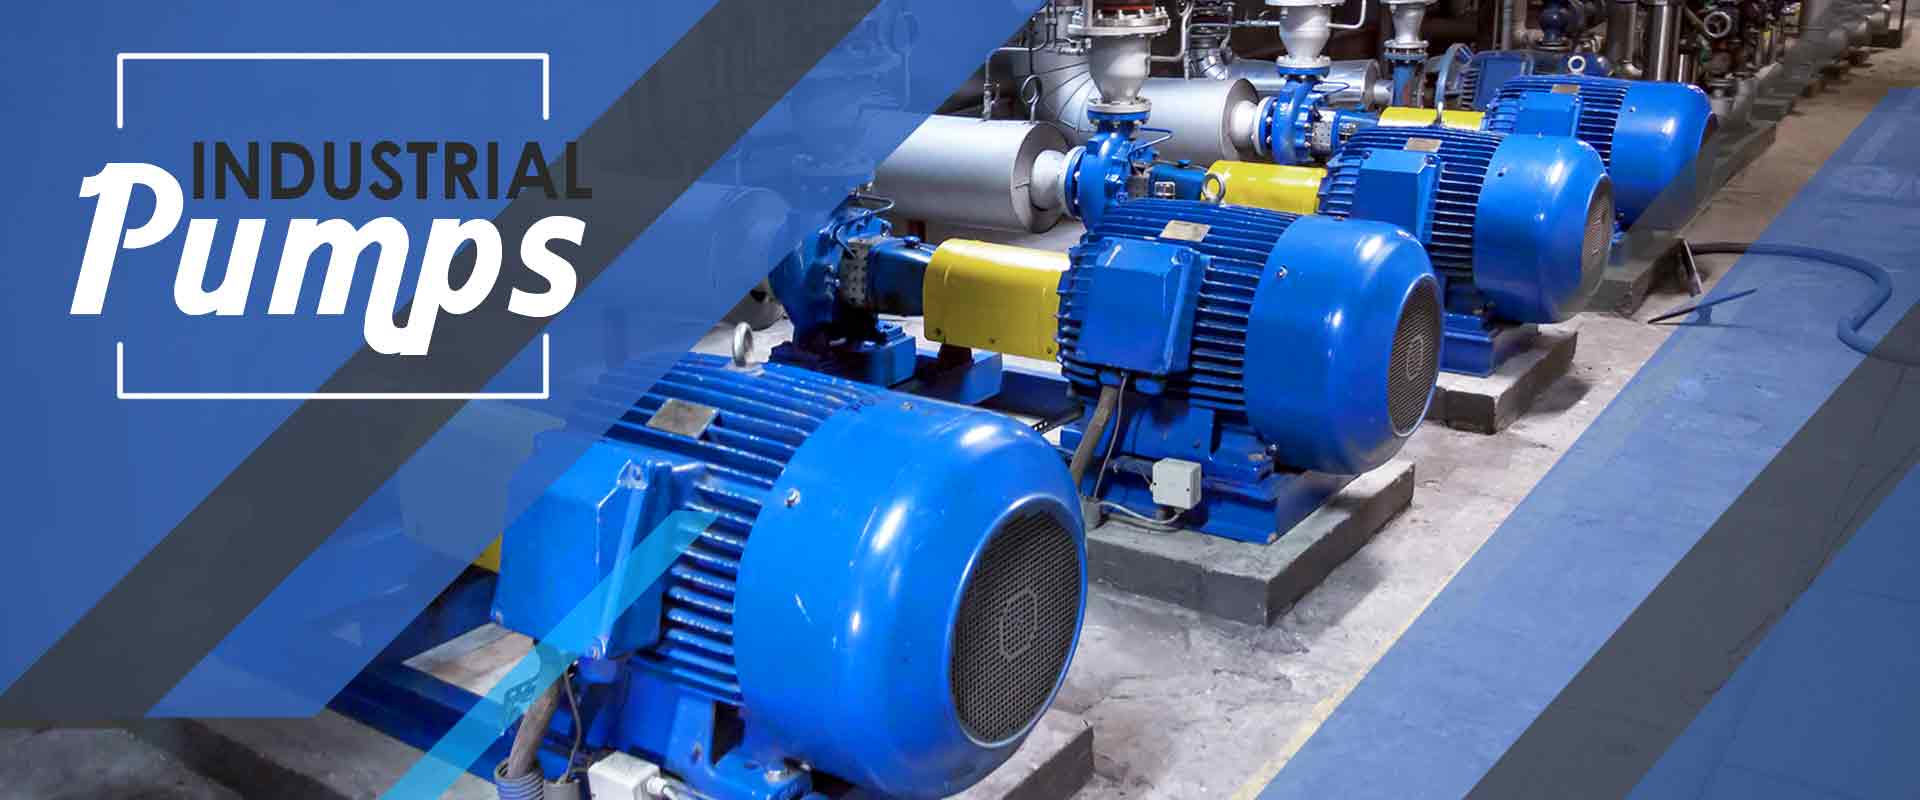 Industrial Pumps Manufacturers In New Mexico